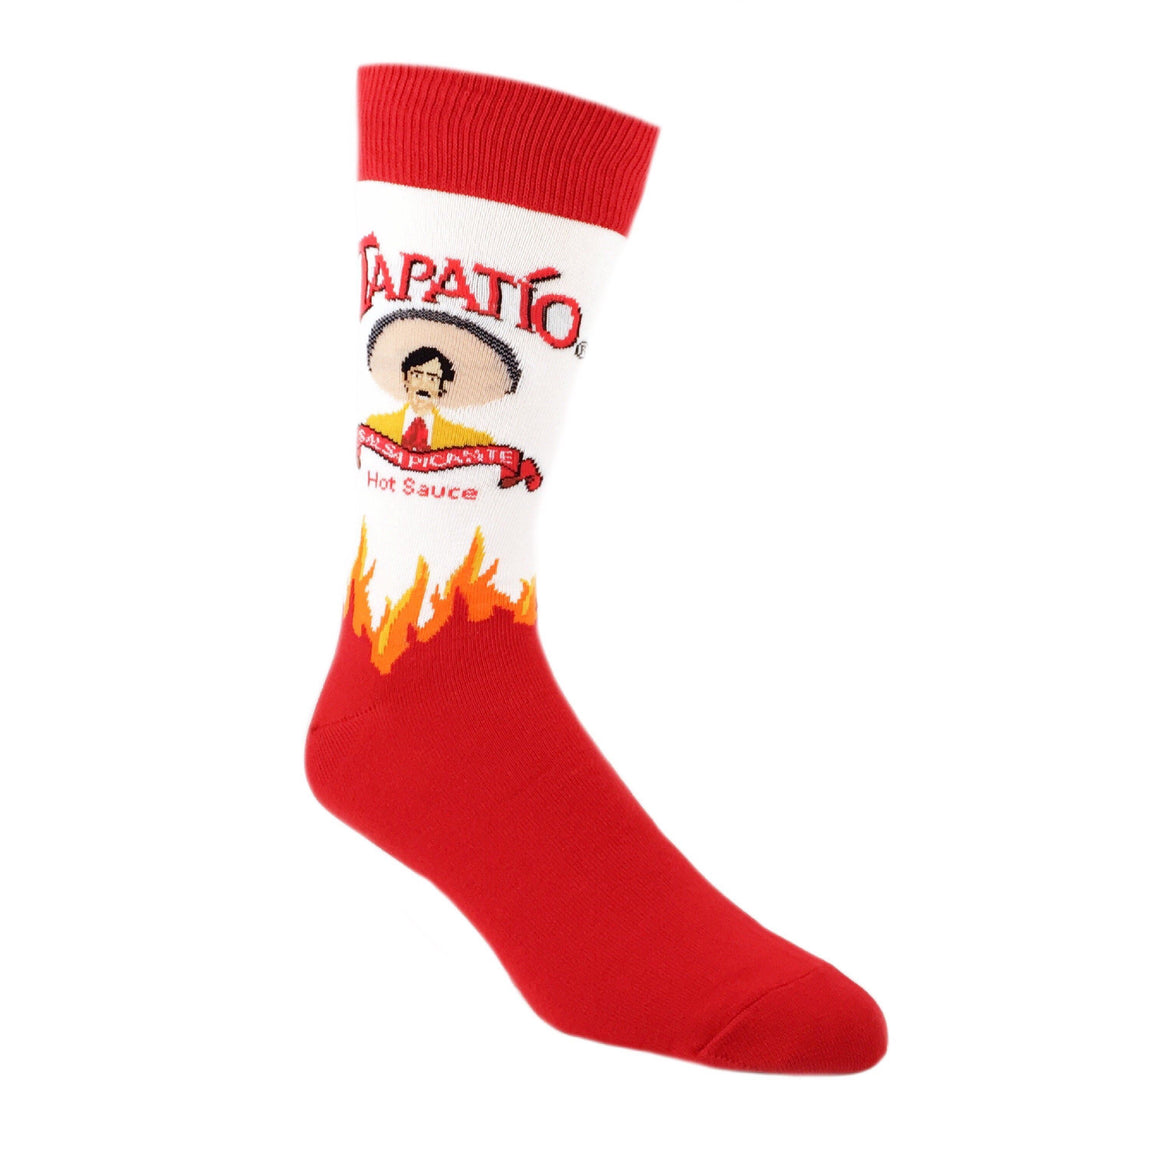 Tapatio Hot Sauce Socks - The Sock Spot